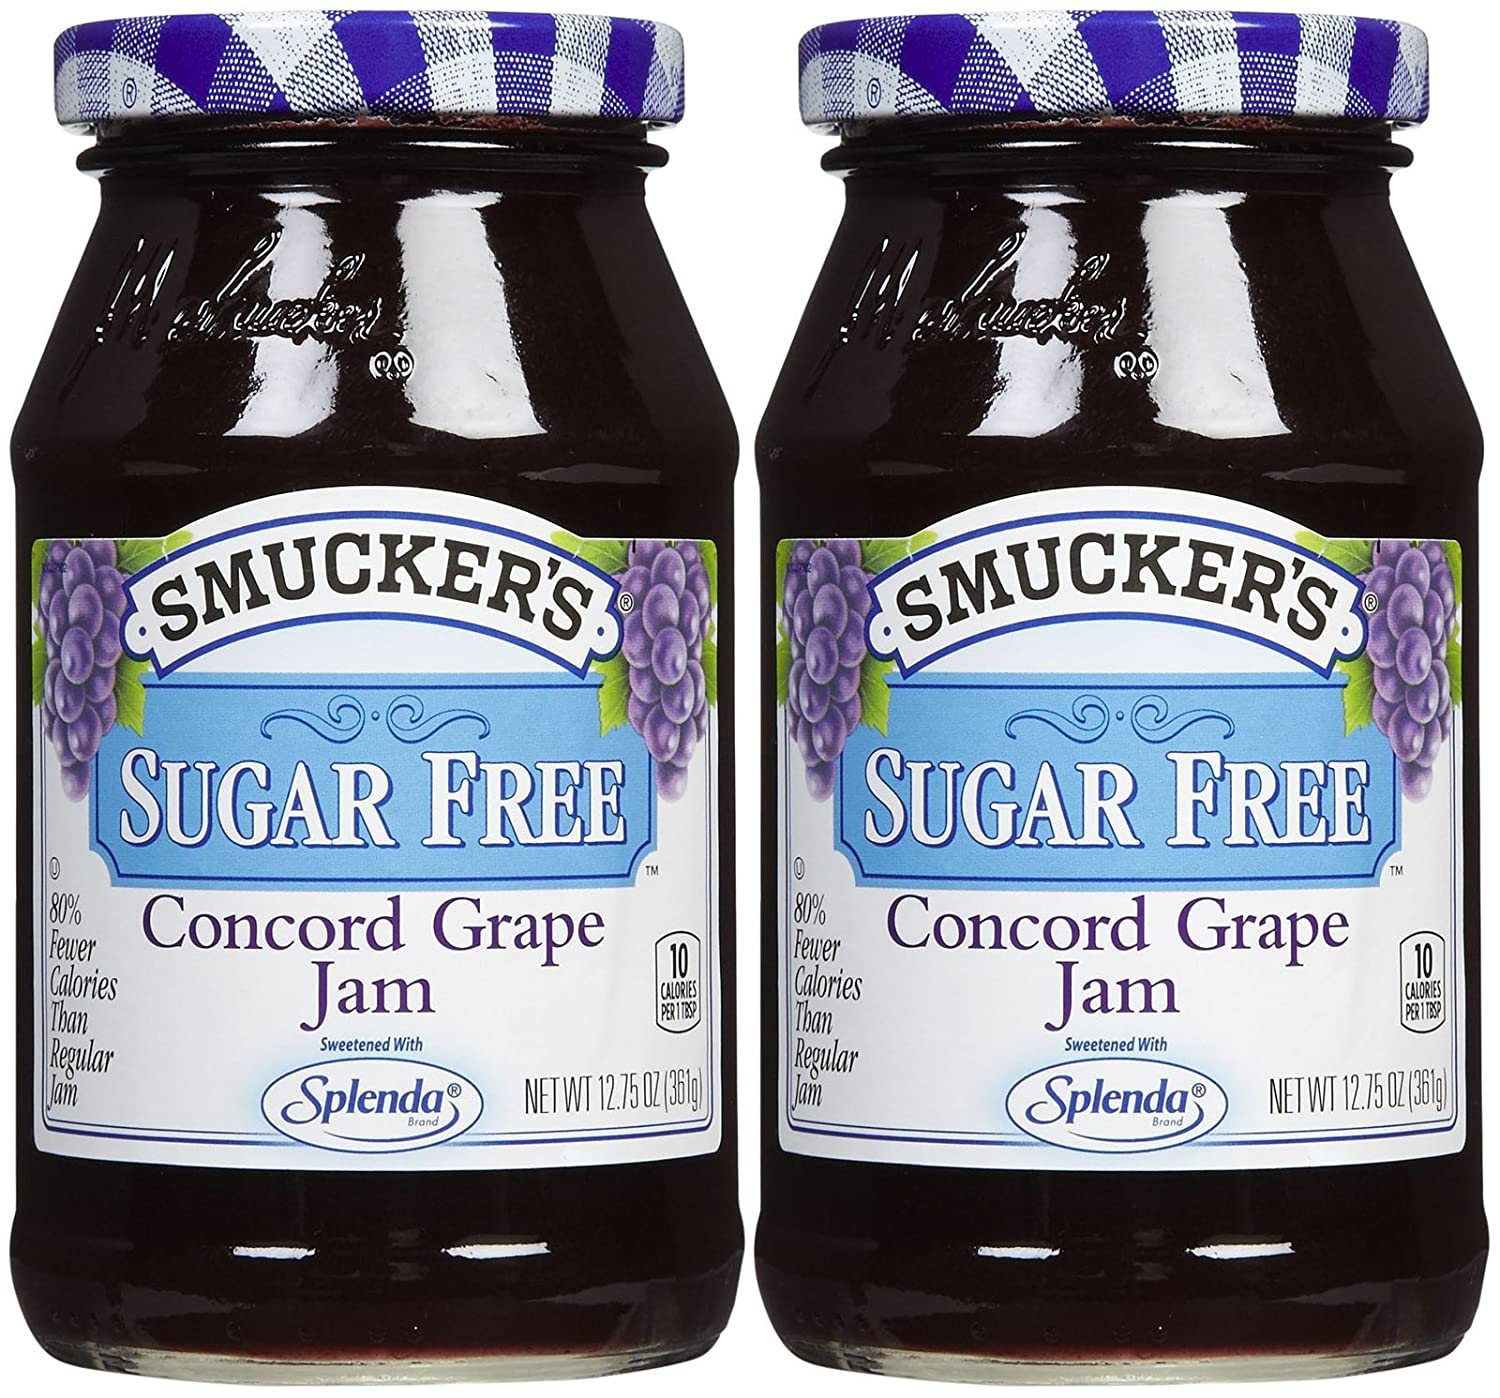 Smucker's Sugar Free Concord Grape Jam, 12.75 oz, 2 pk